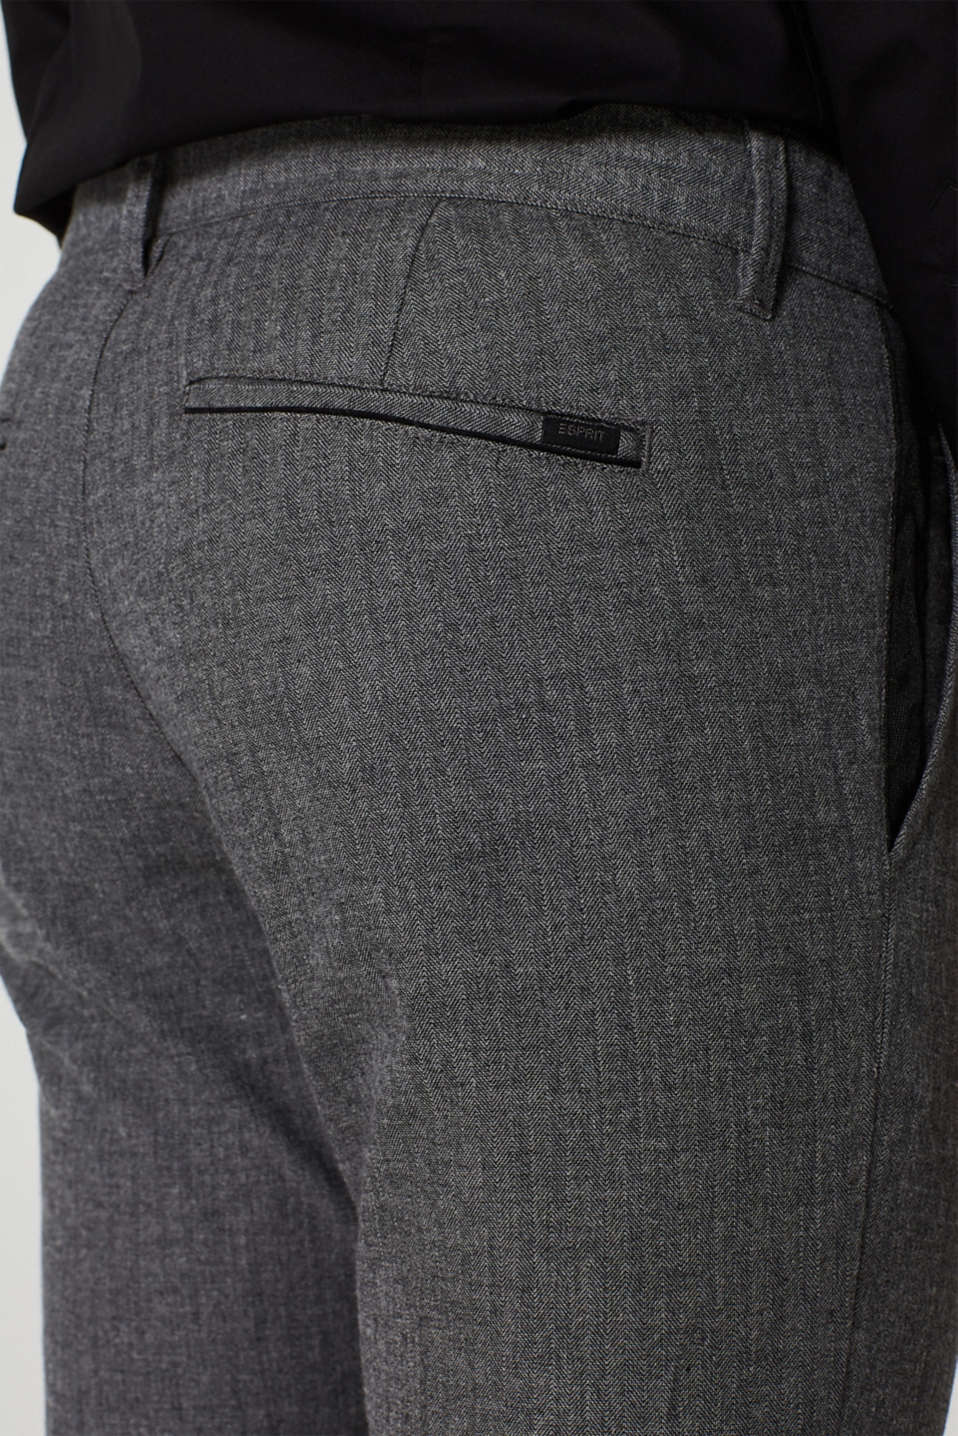 Stretch trousers with a herringbone texture, GREY, detail image number 2